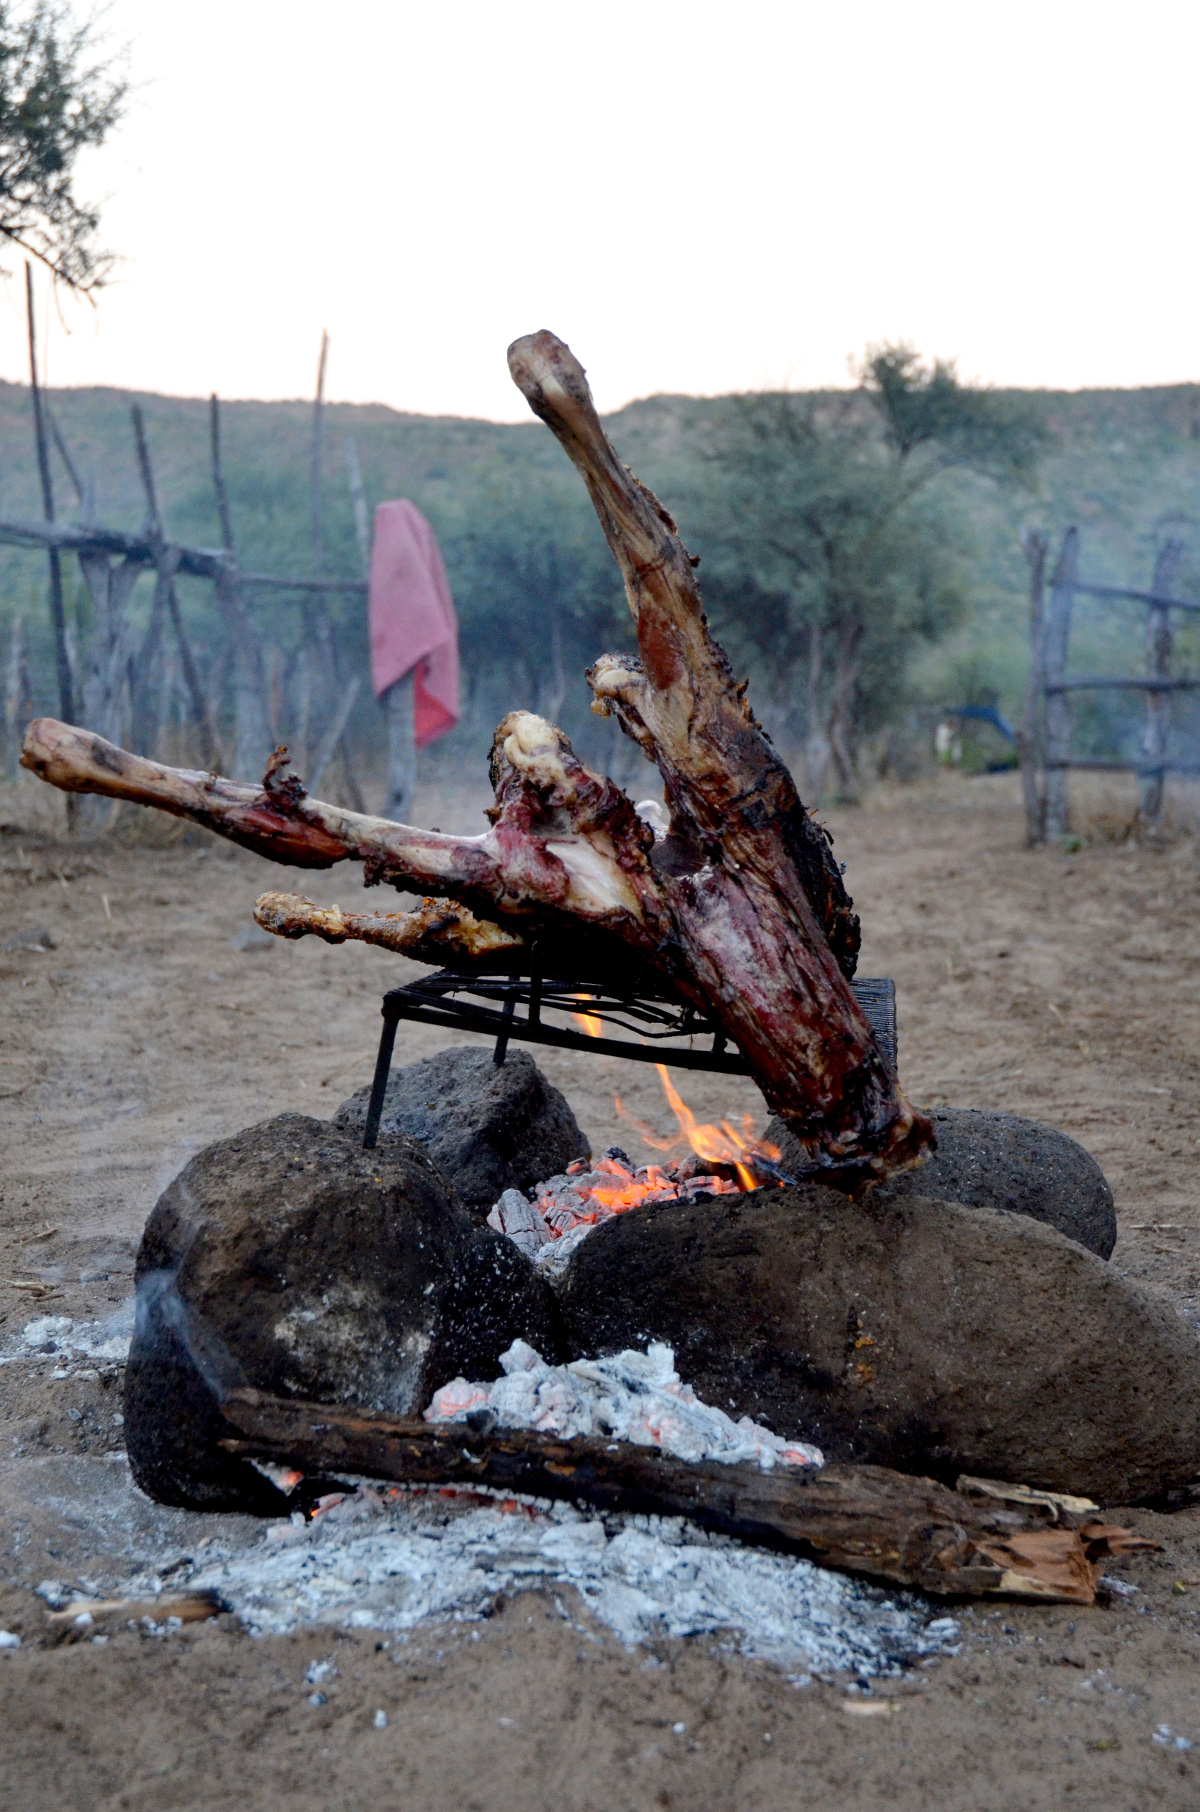 Roasting a goat on fire